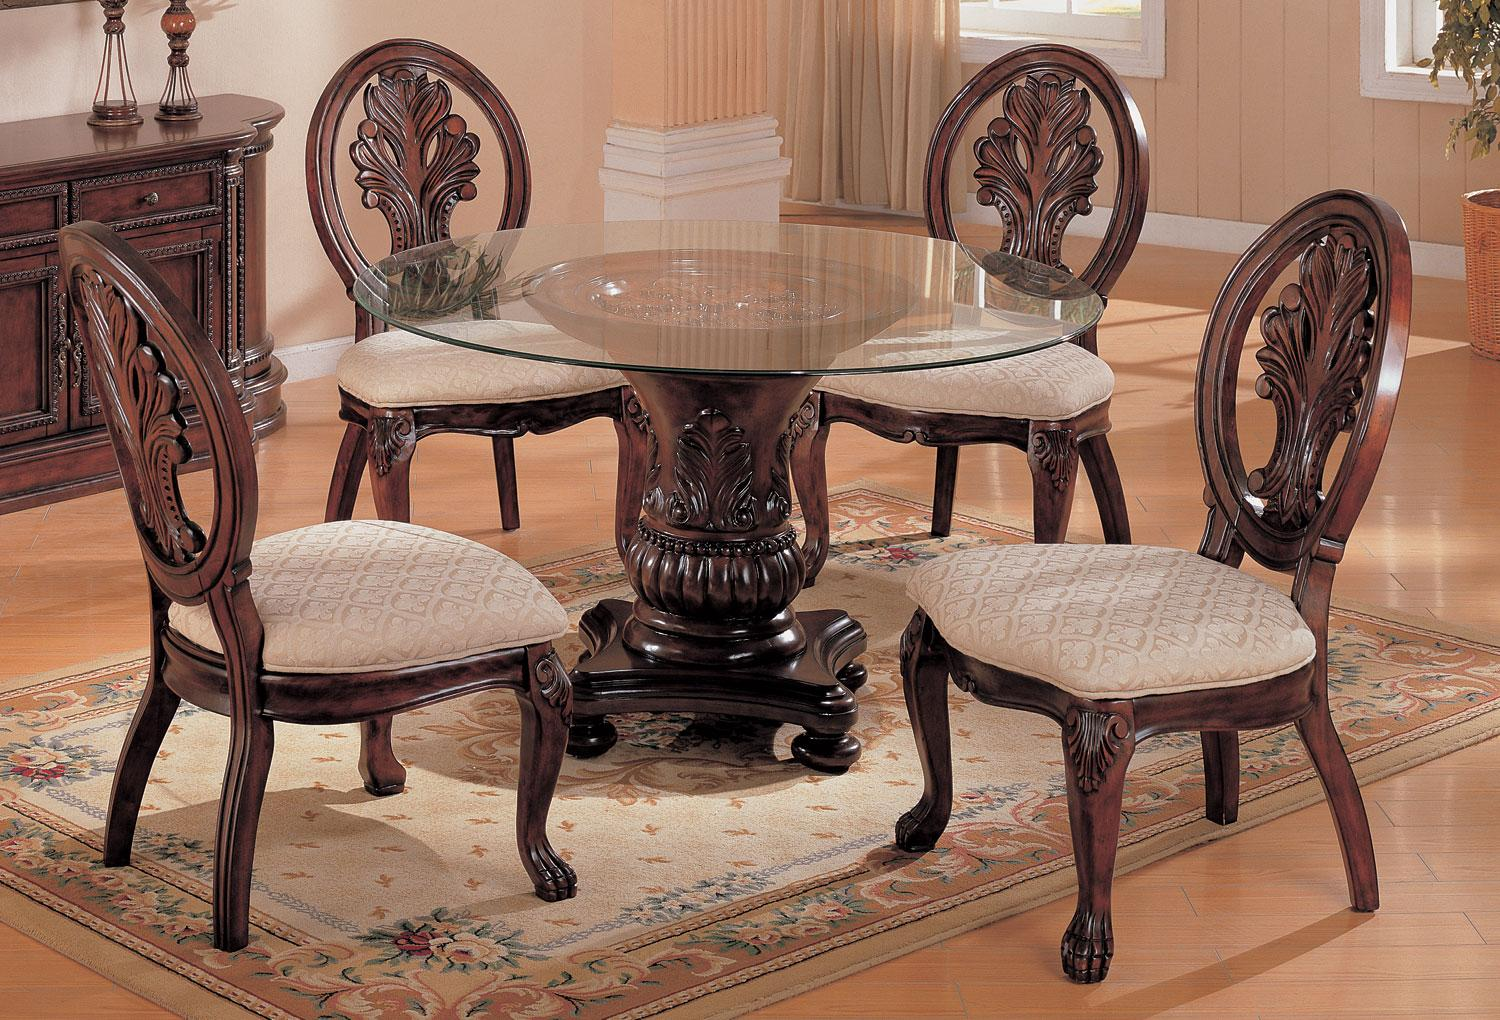 round pedestal dining room tables | Coaster Tabitha Round Pedestal Dining Table Dallas TX ...